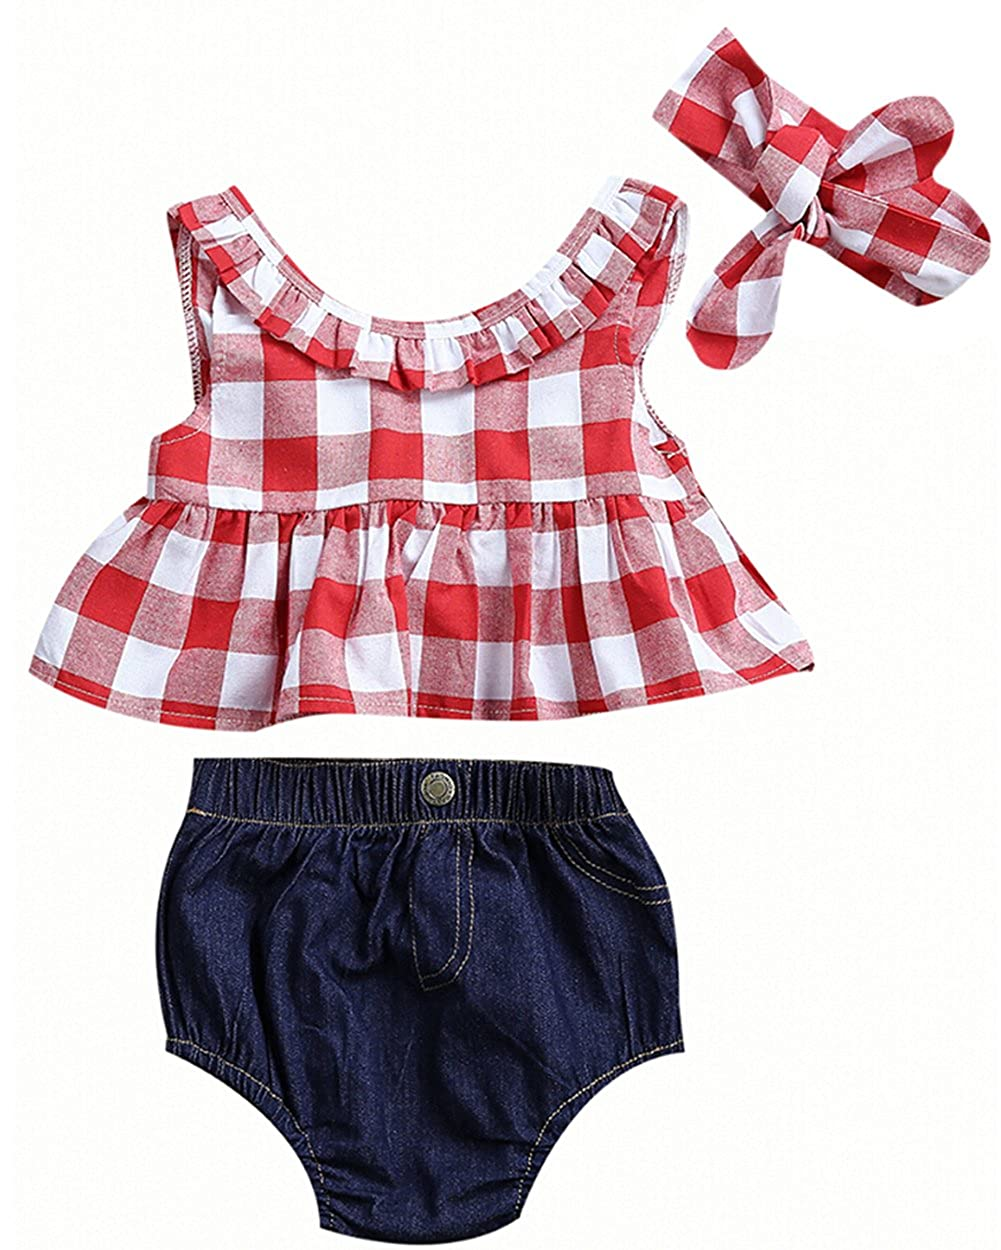 Baby Girls Plaid Ruffle Bowknot Tank Top Denim Shorts Outfit Headband